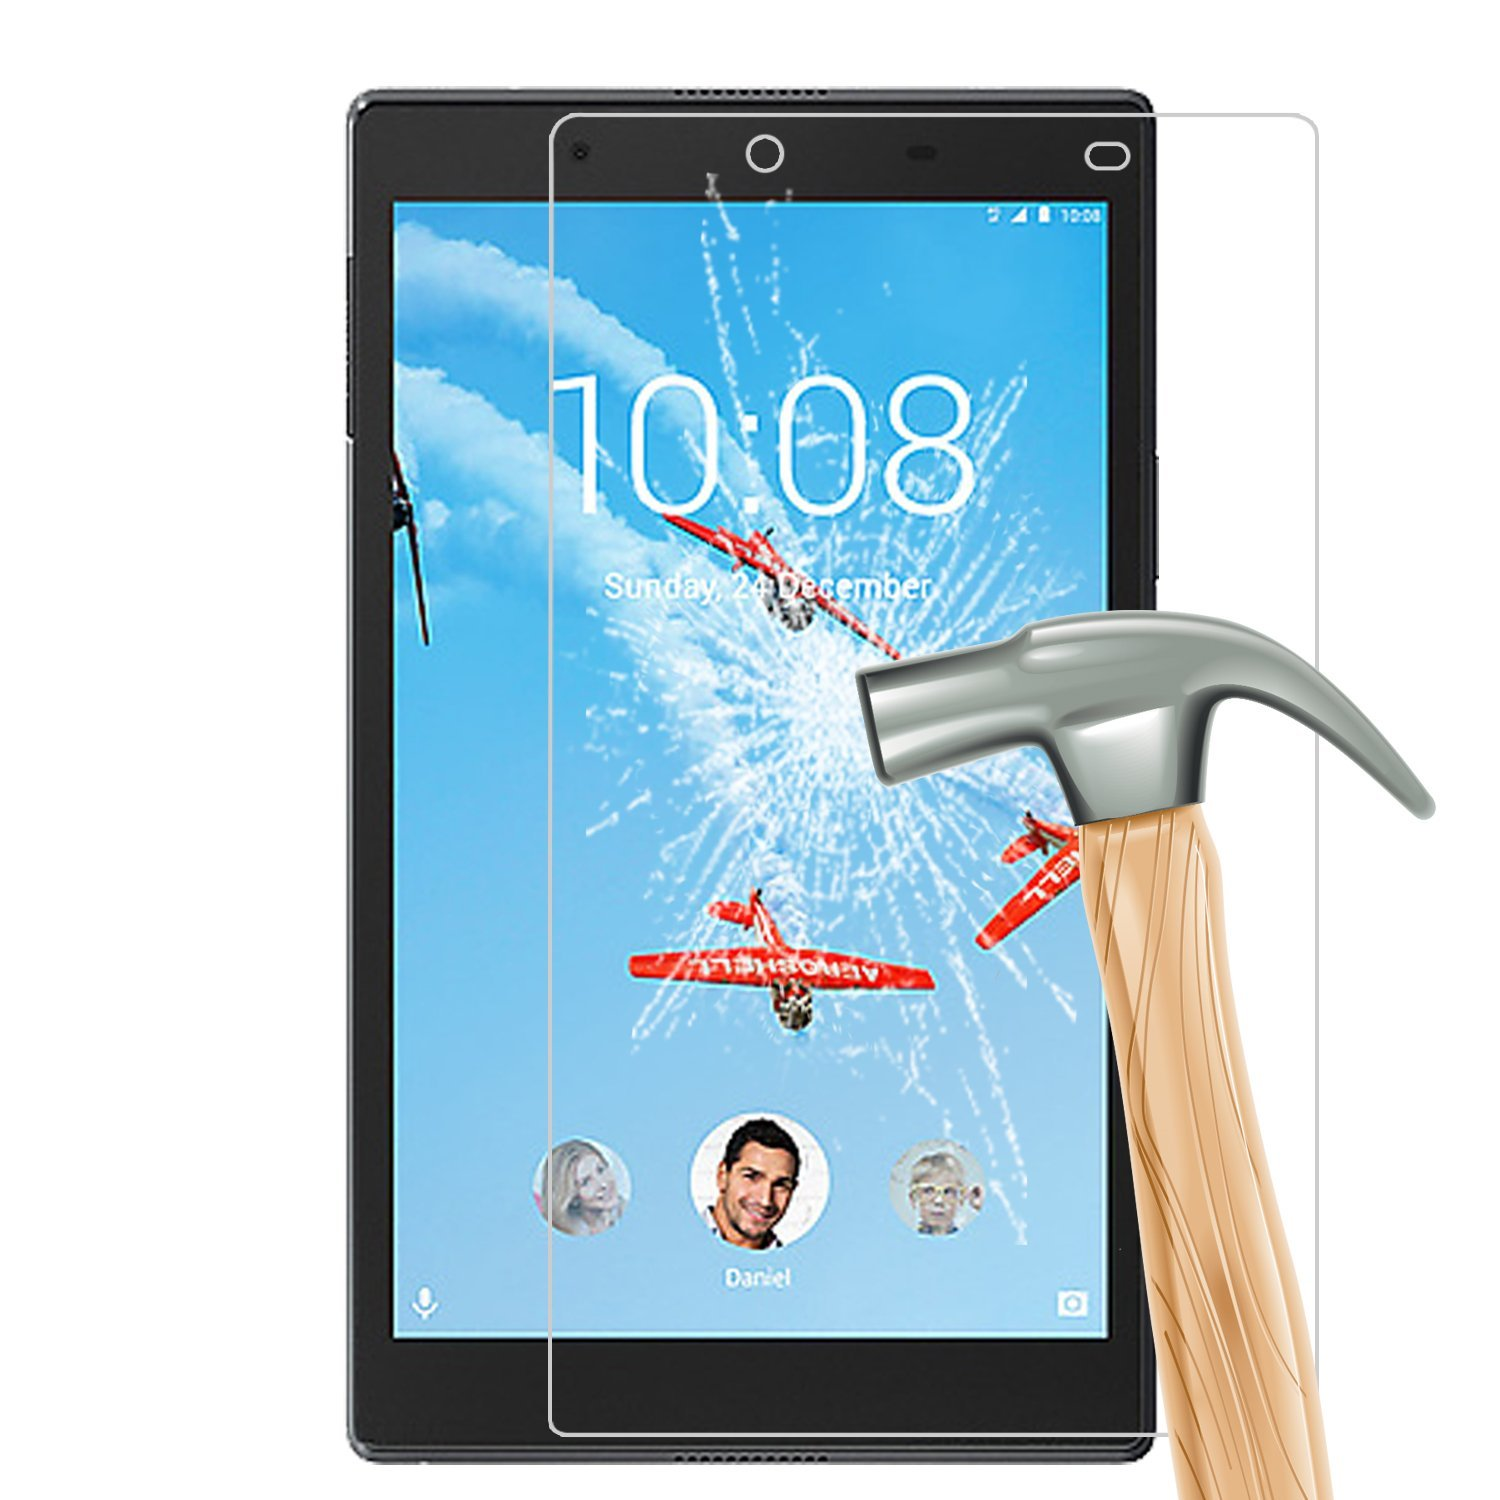 Tempered Glass For Lenovo Tab 4 8 10 Plus Screen Protector For Lenovo Tab 4 10 8 Plus 8 inch 10.1 Clear Tempered Glass CoverTempered Glass For Lenovo Tab 4 8 10 Plus Screen Protector For Lenovo Tab 4 10 8 Plus 8 inch 10.1 Clear Tempered Glass Cover